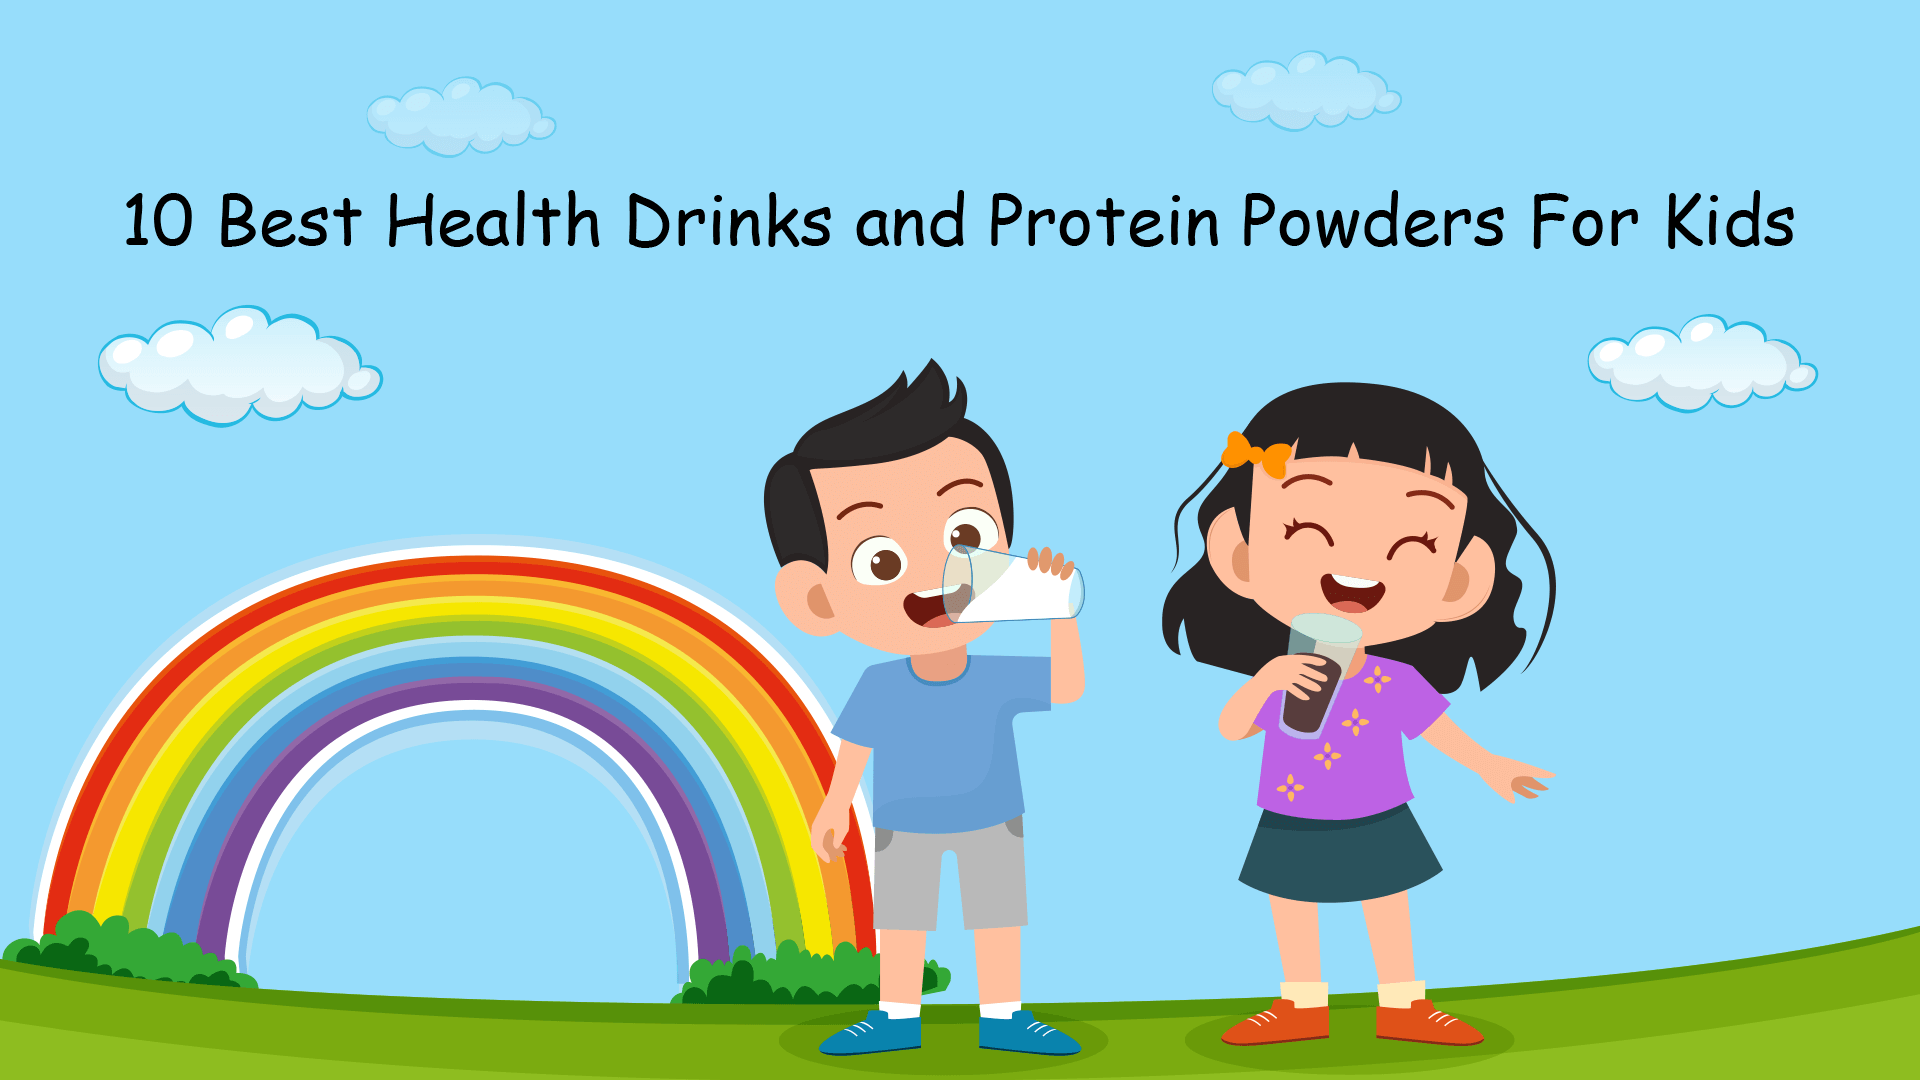 10 Best Health Drinks and Protein Powders For Kids in India